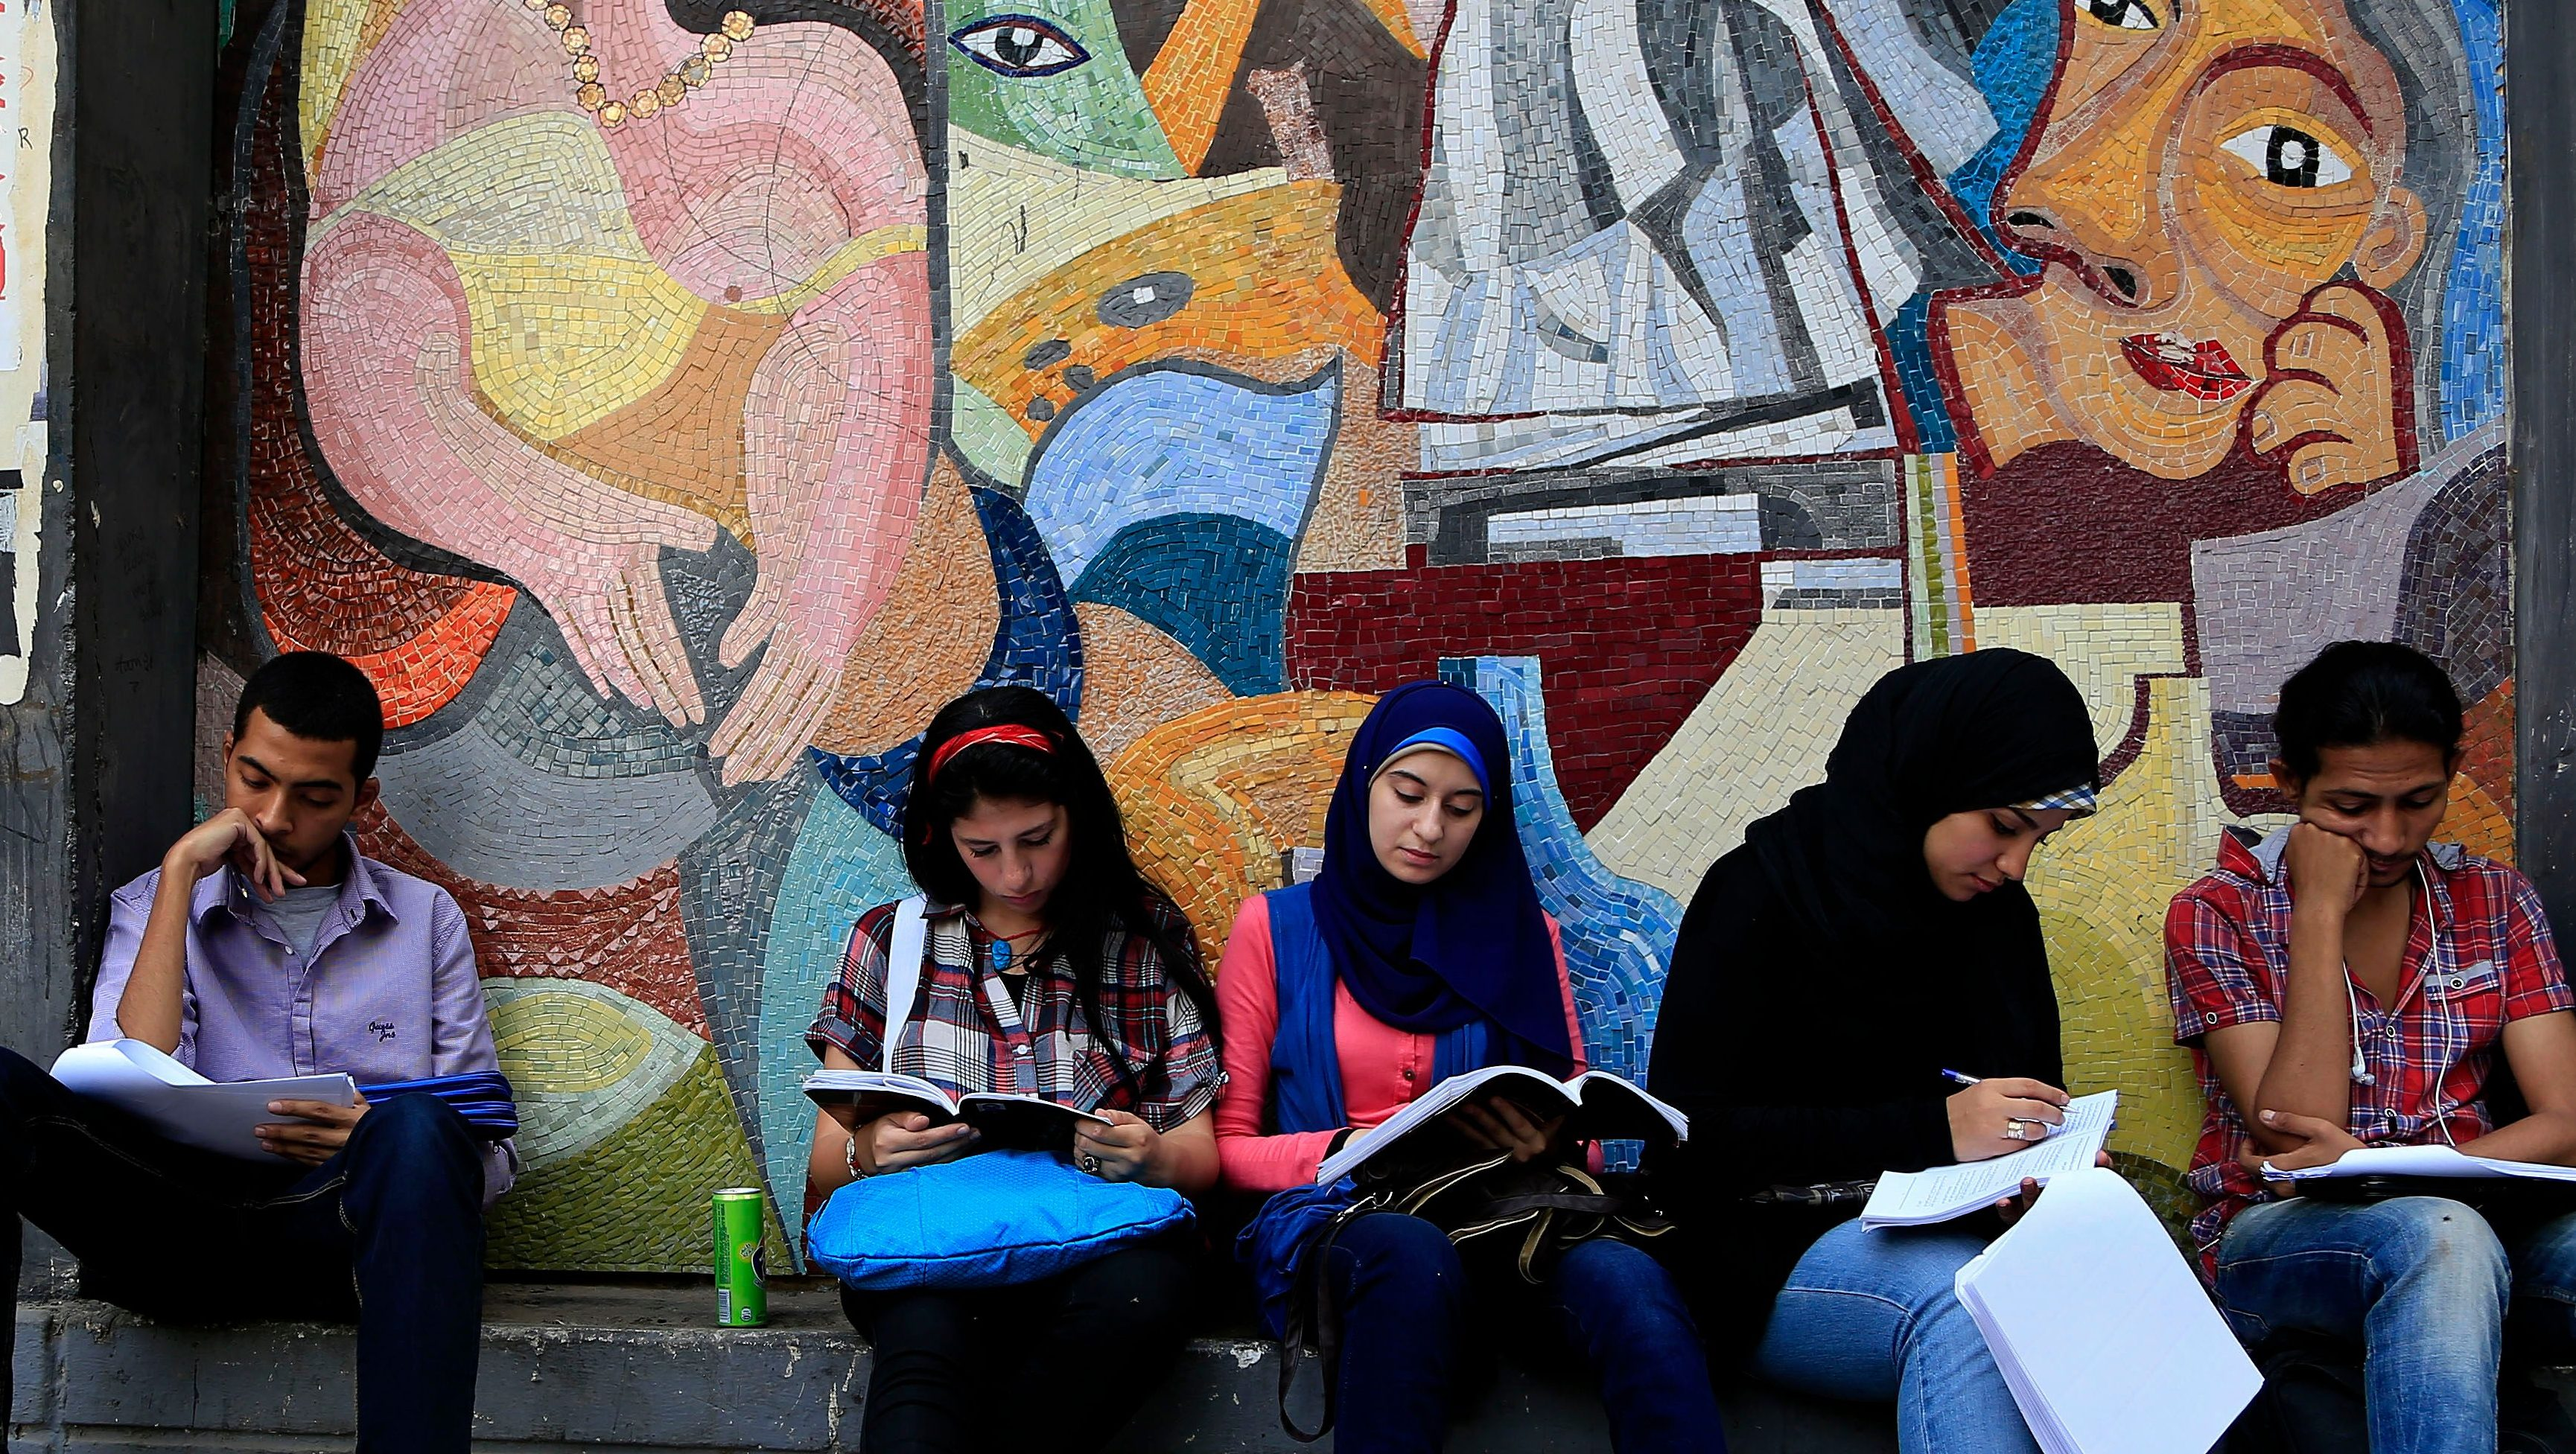 Art students from the University of Helwan study outside their university for their final year exams in the Zamalek neighborhood of Cairo, Egypt, Sunday, June 2, 2013.